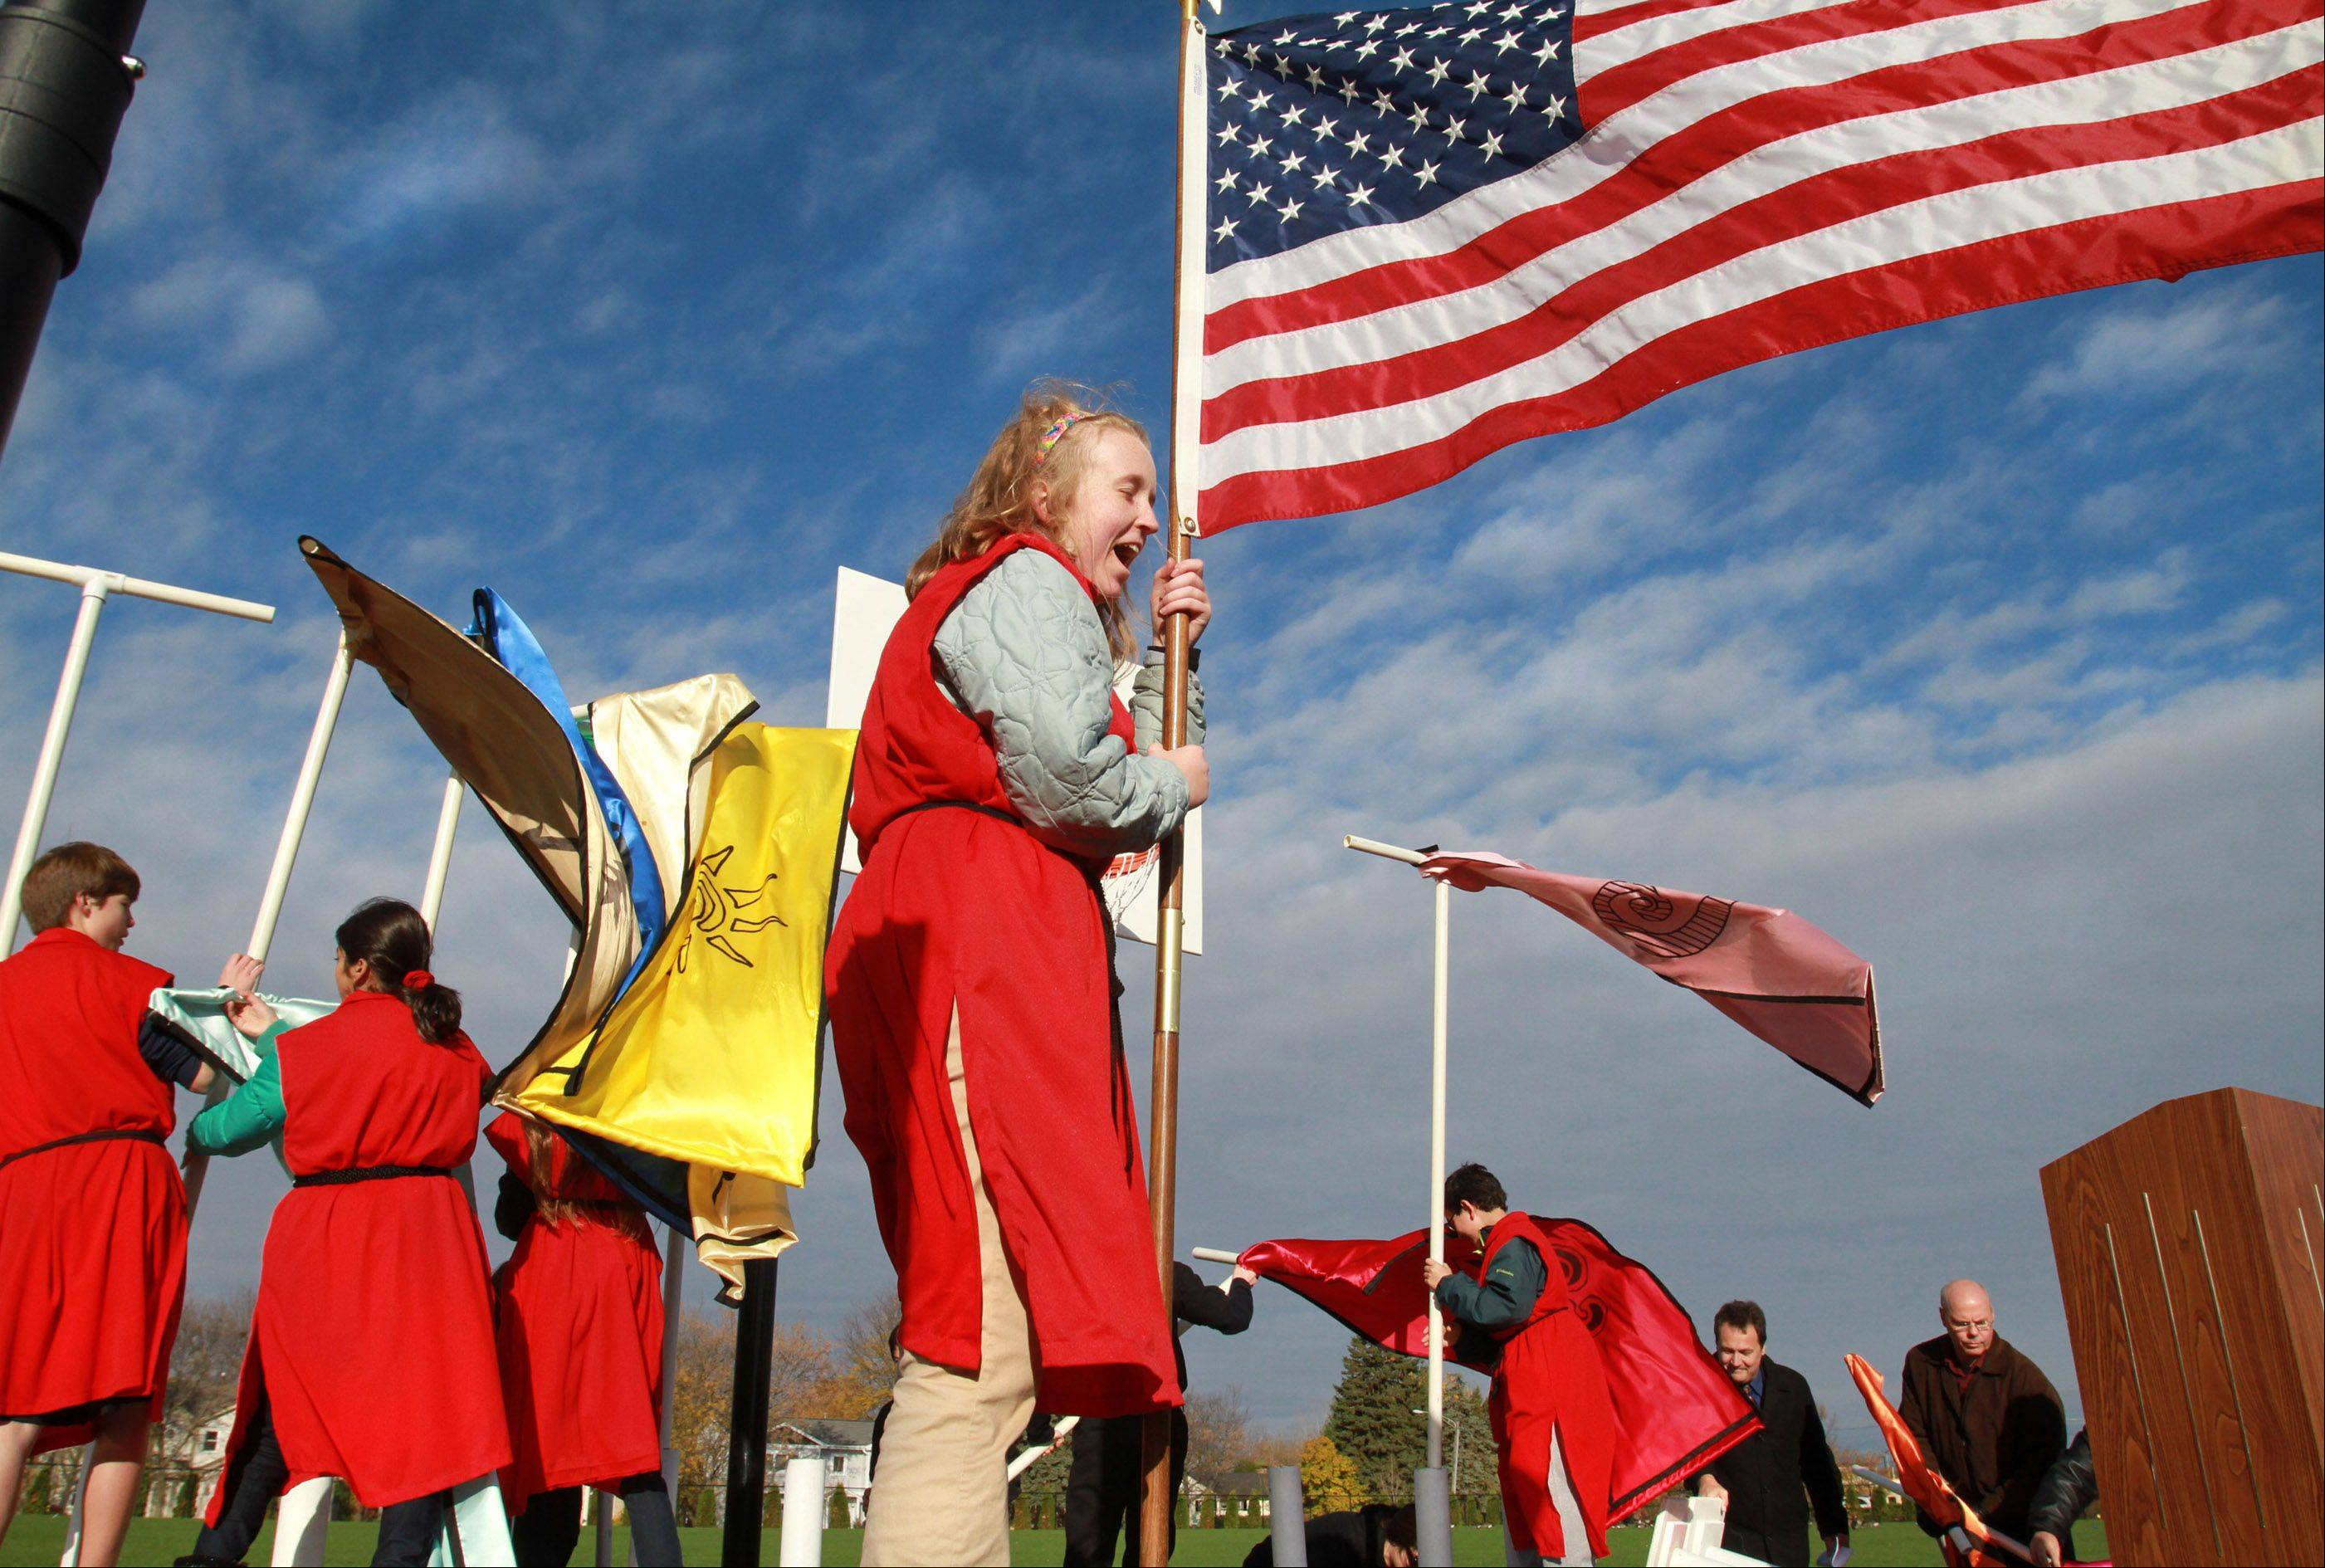 Hannah O'Brien, 14, eight-grader at Quest Academy, raises the American flag as a wind gust toppled banners and flags onstage at the school's ribbon-cutting ceremony for its outdoor West Campus in Palatine.